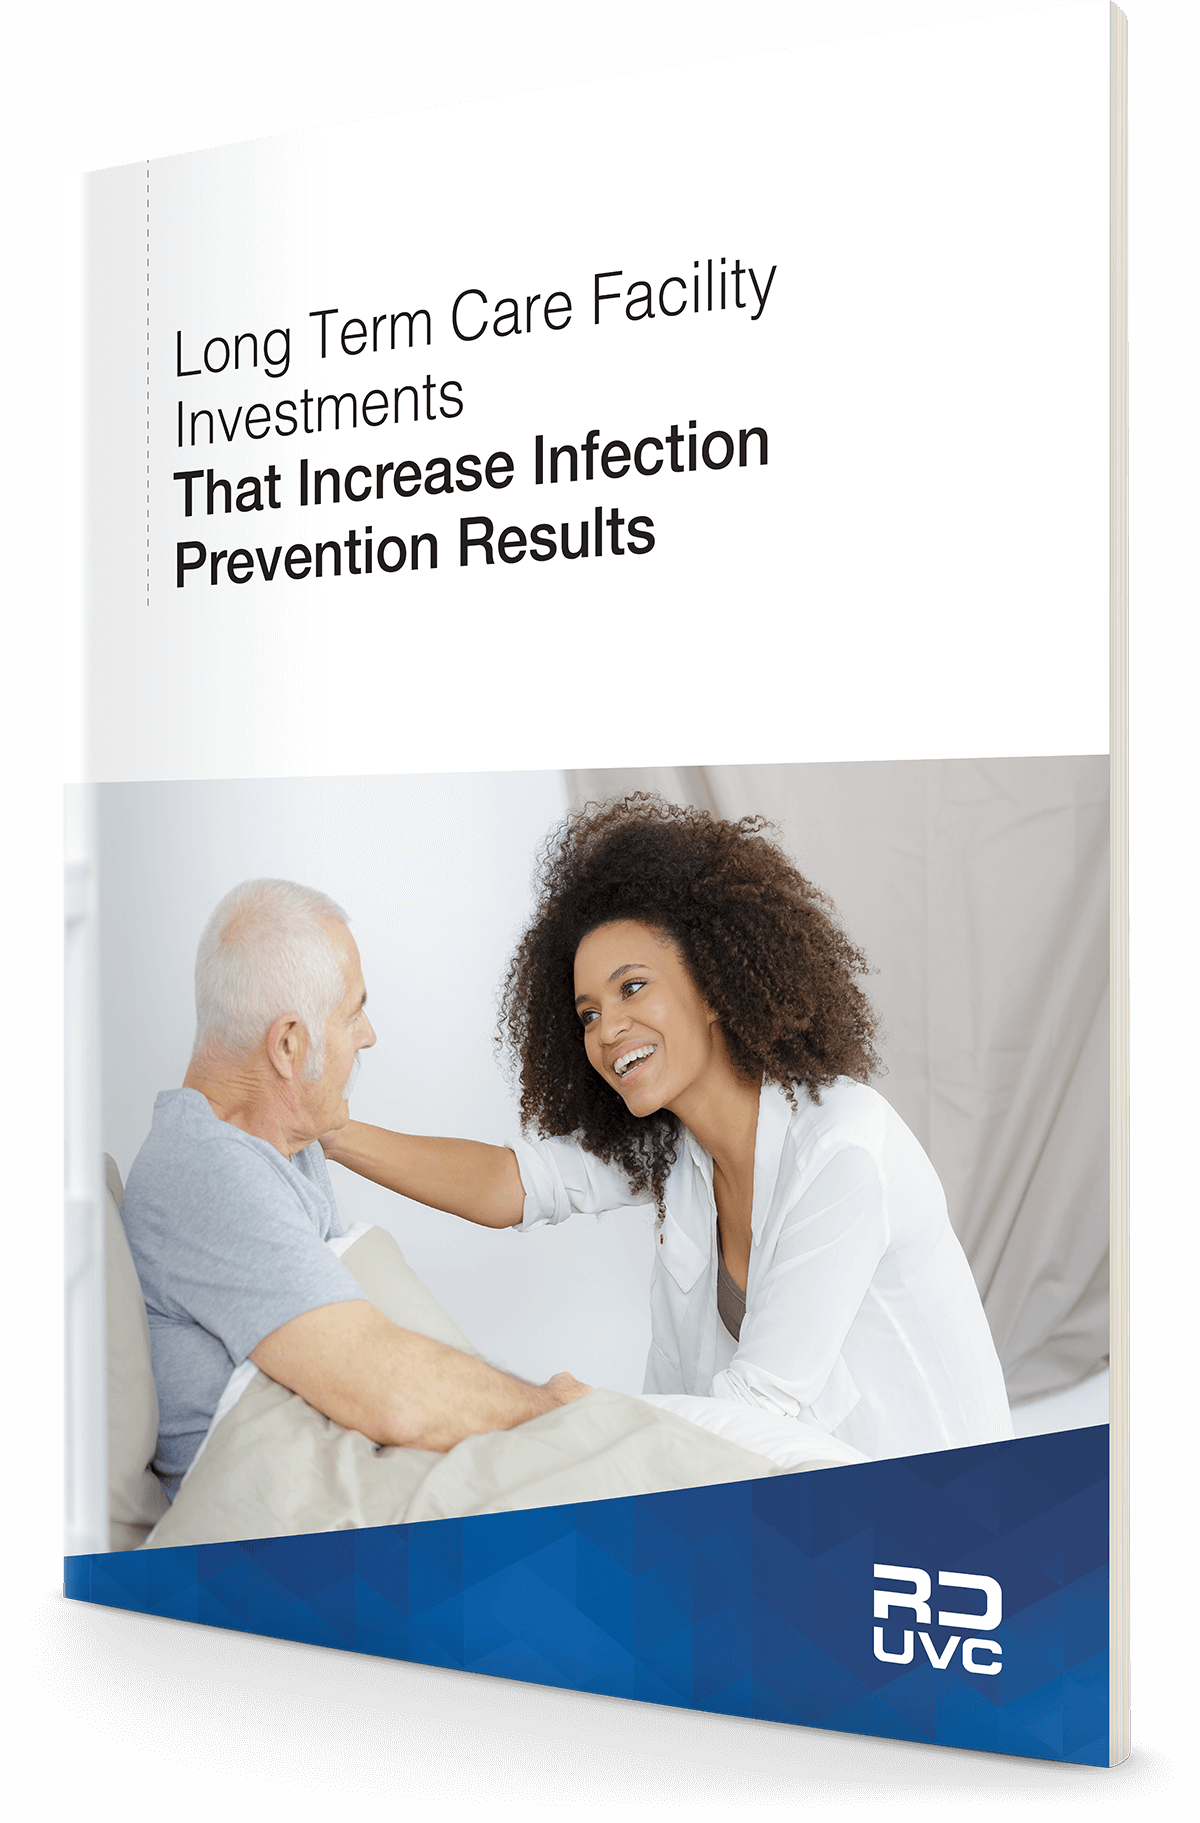 Long Term Care Facility Investments That Increase Infection Prevention Results